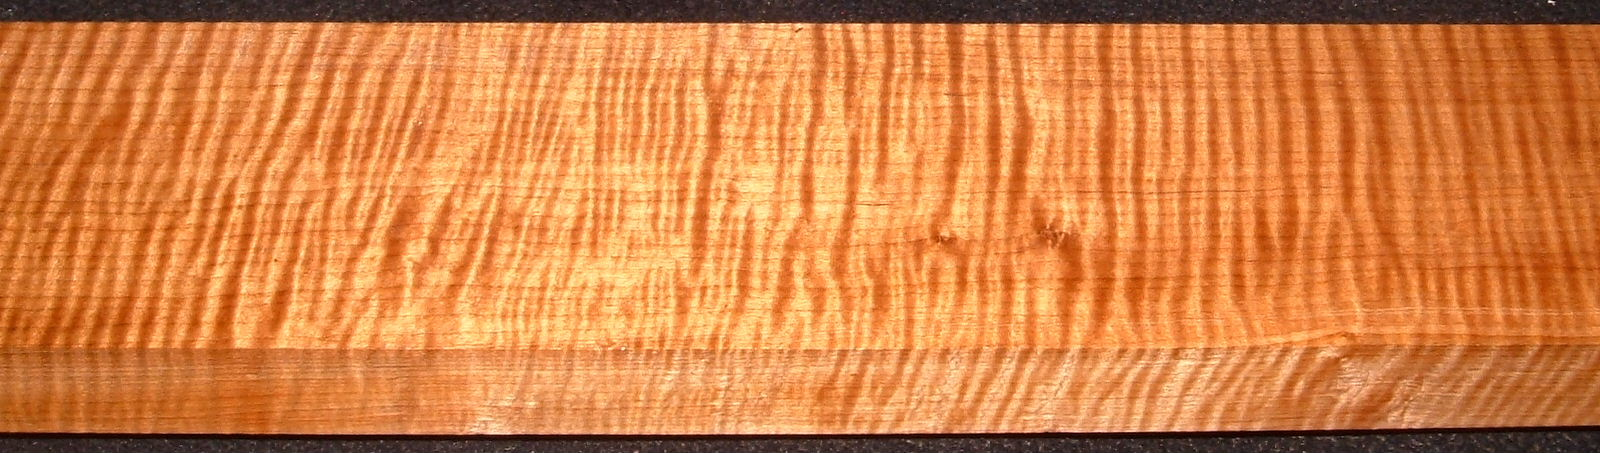 QRM2008-230, 1-1/8x3-1/4x43, Quartersawn Roasted Curly Maple